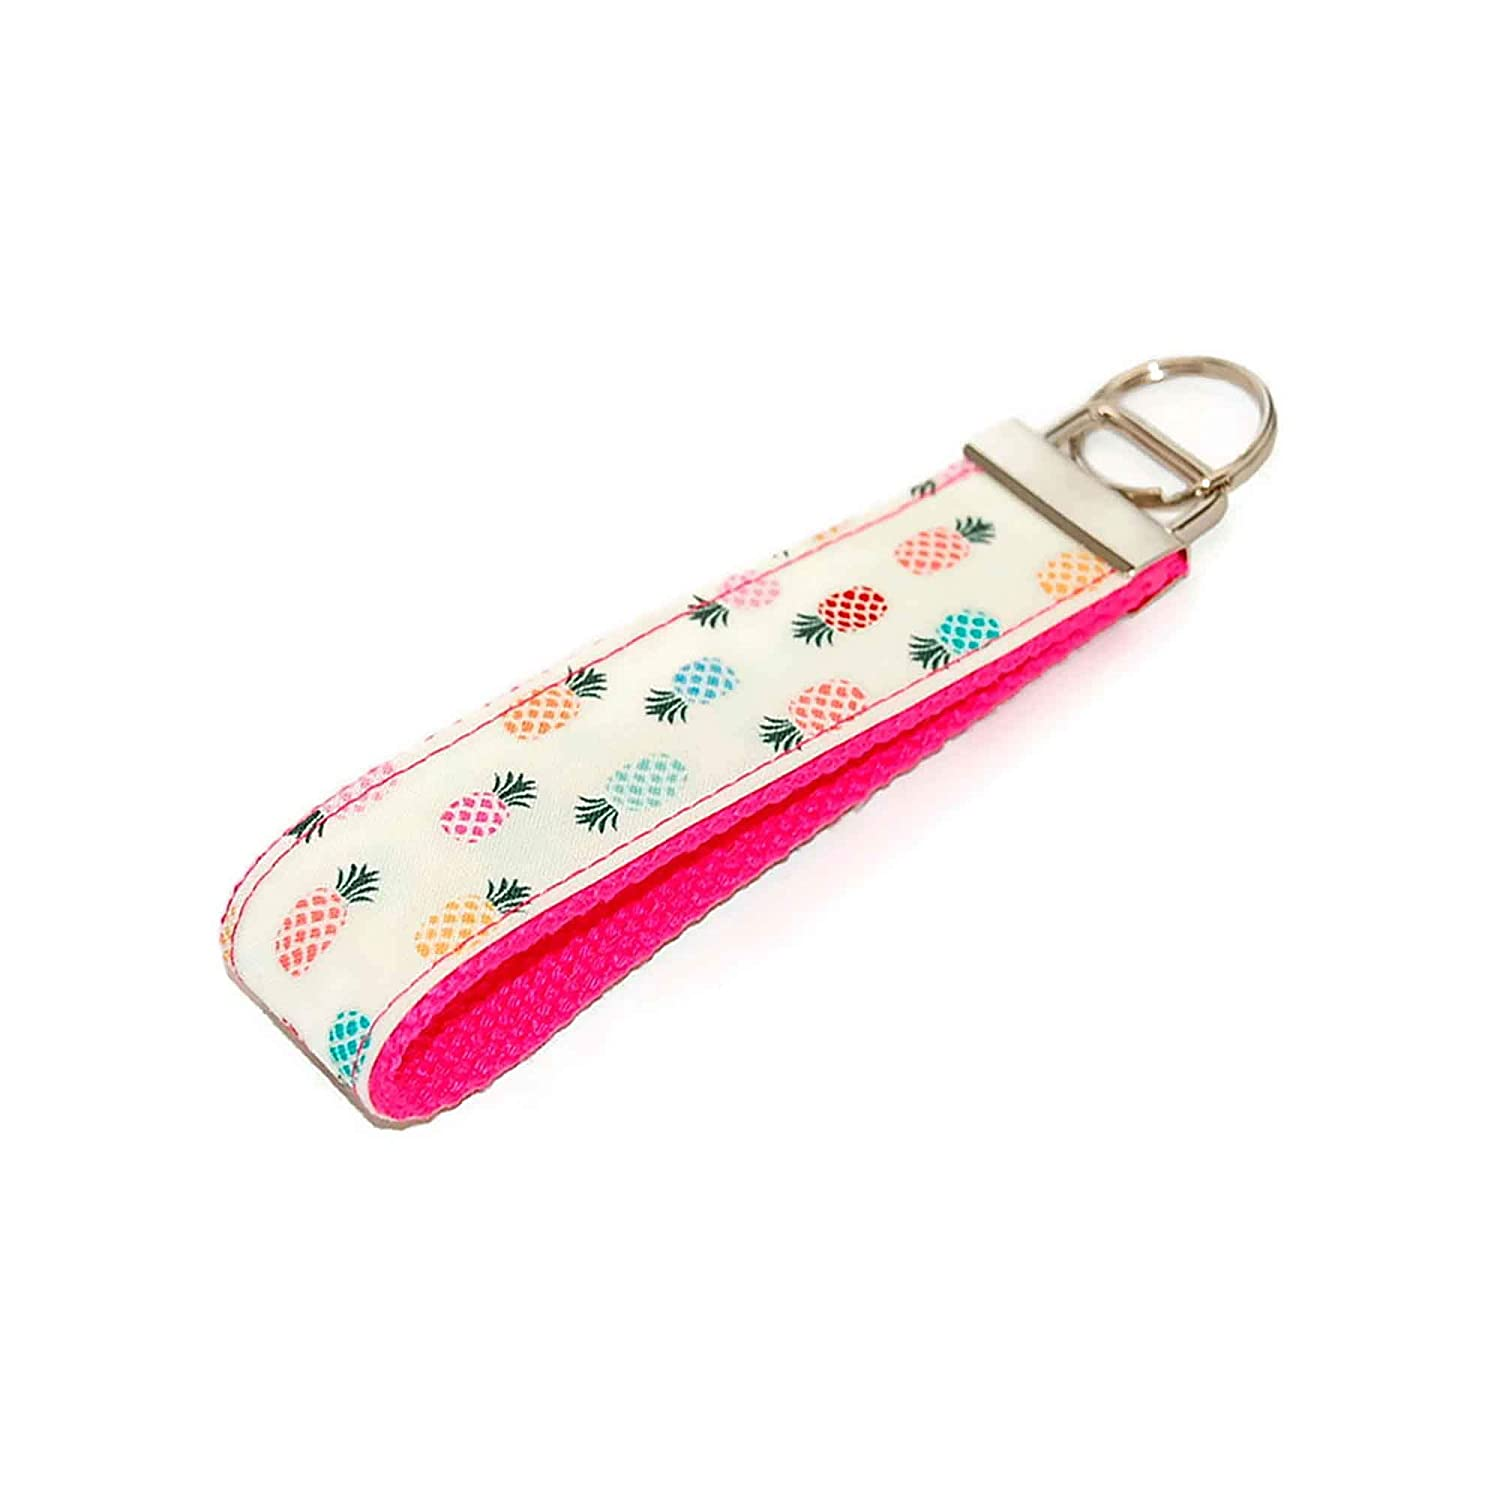 Heavy Cotton Soft Mini key chain key fob with key ring and clasp